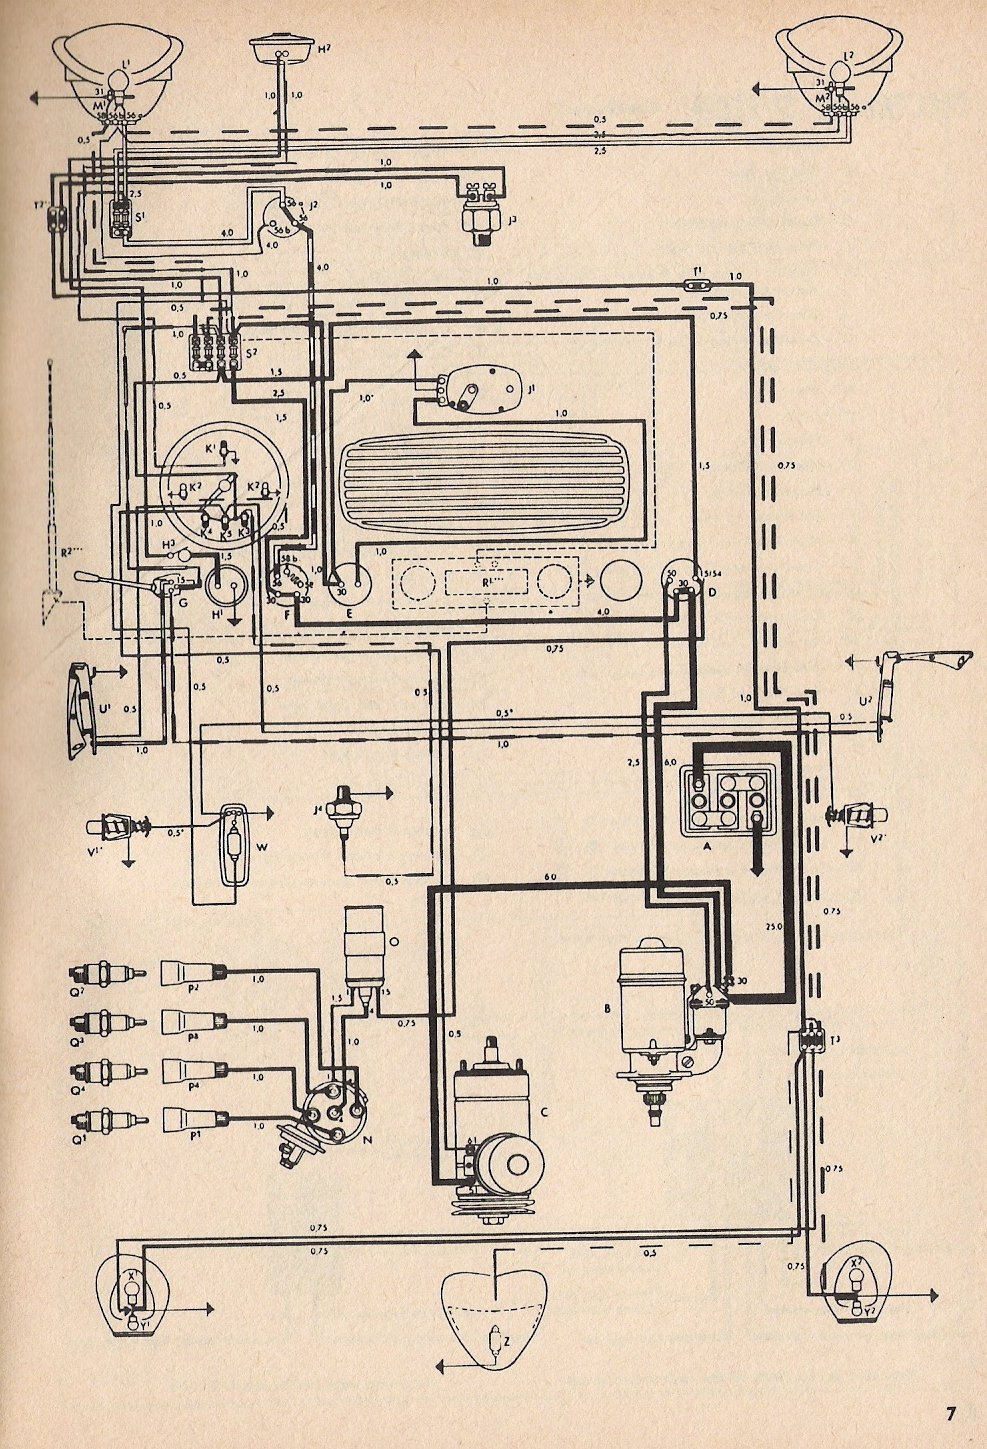 bug_54 vw wiring harness diagram cj7 wiring harness diagram \u2022 wiring vw dune buggy wiring harness at panicattacktreatment.co